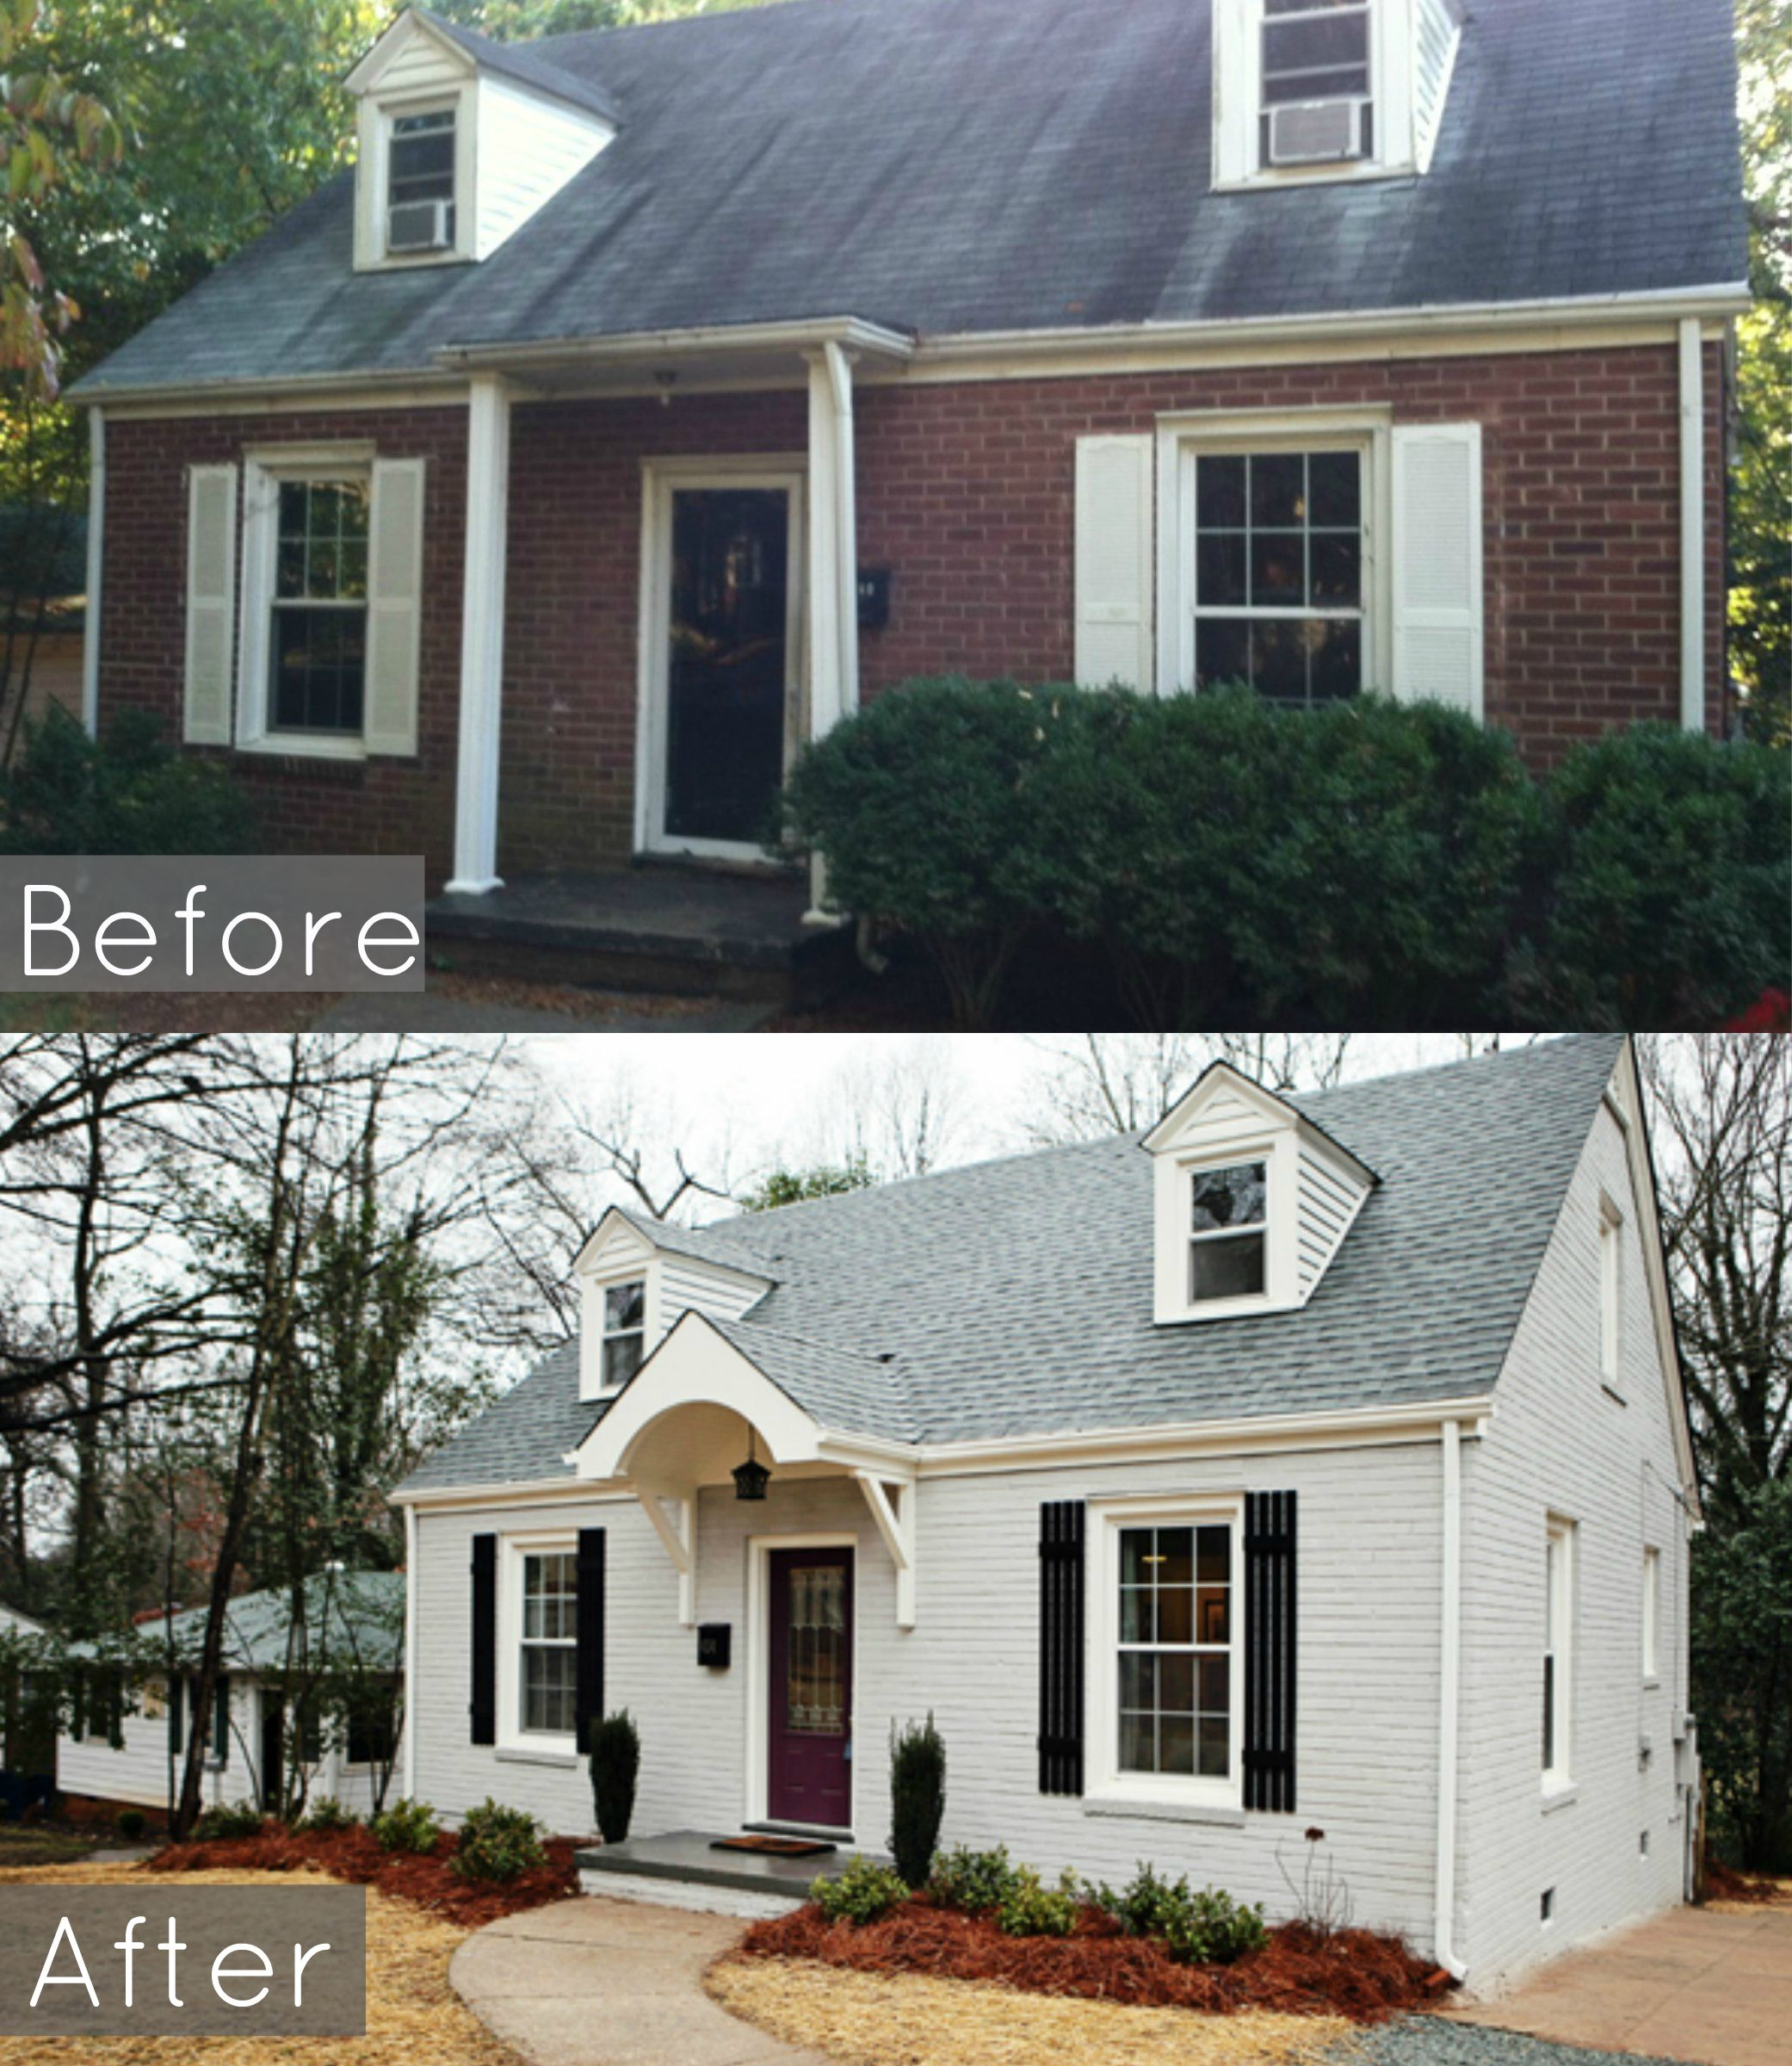 Here Is A Before And After Of This 1950 39 S Cape Cop We Remodeled It Is Amazing What A Little